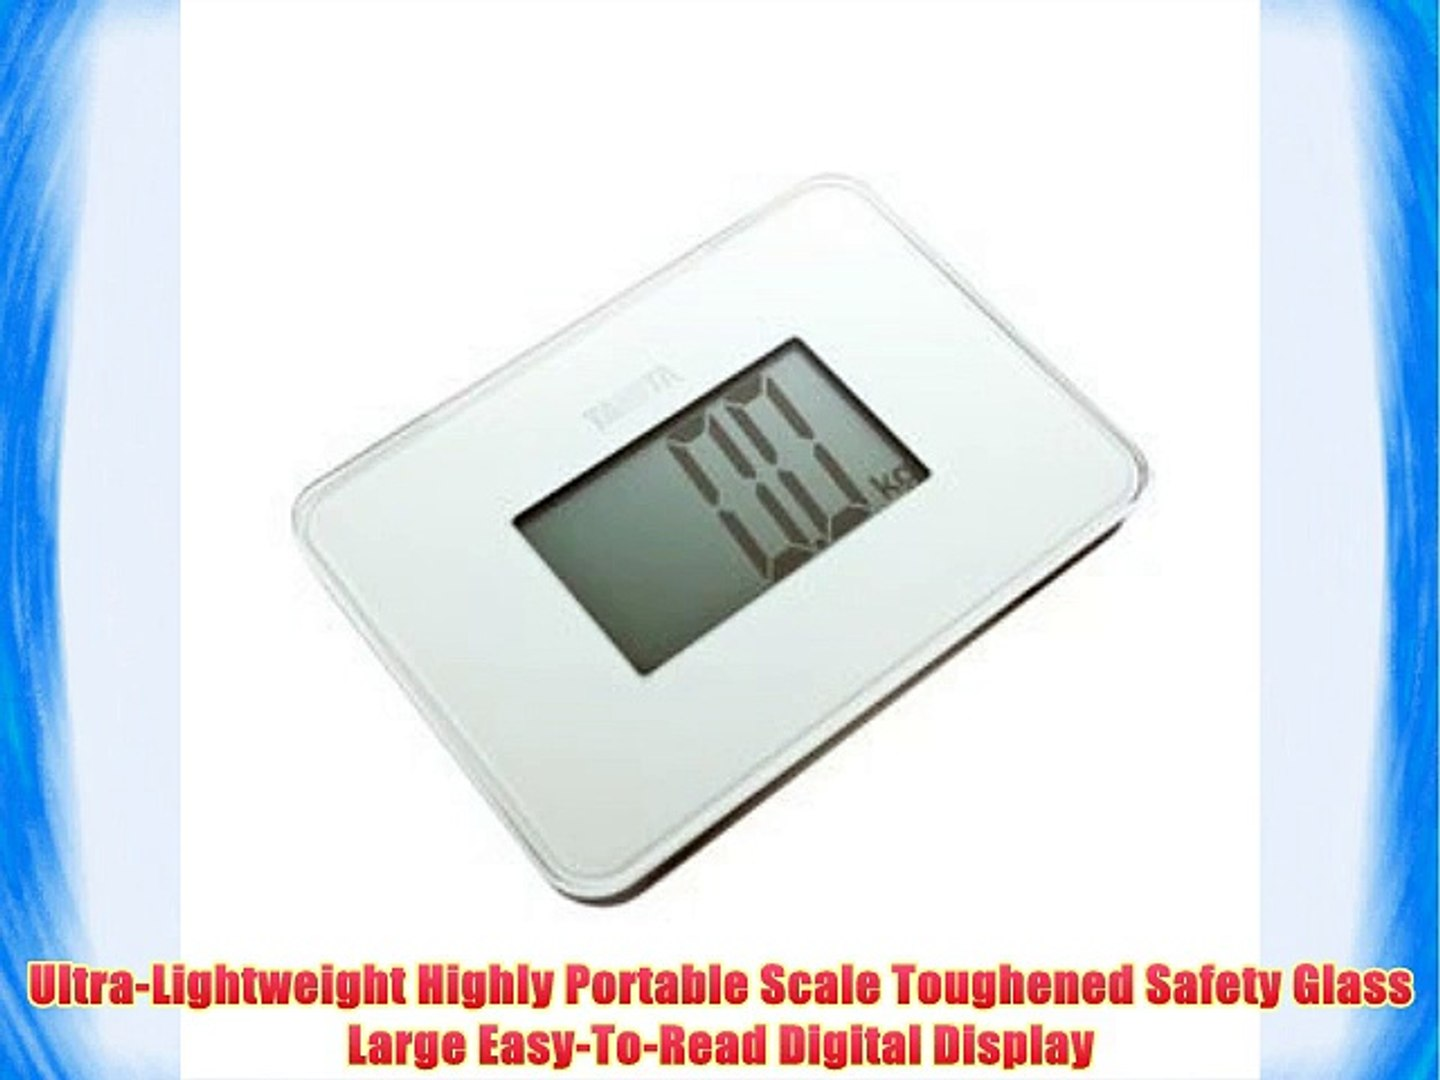 Remarkable Tanita Hd386 Super Compact Digital Scale Color White Download Free Architecture Designs Scobabritishbridgeorg